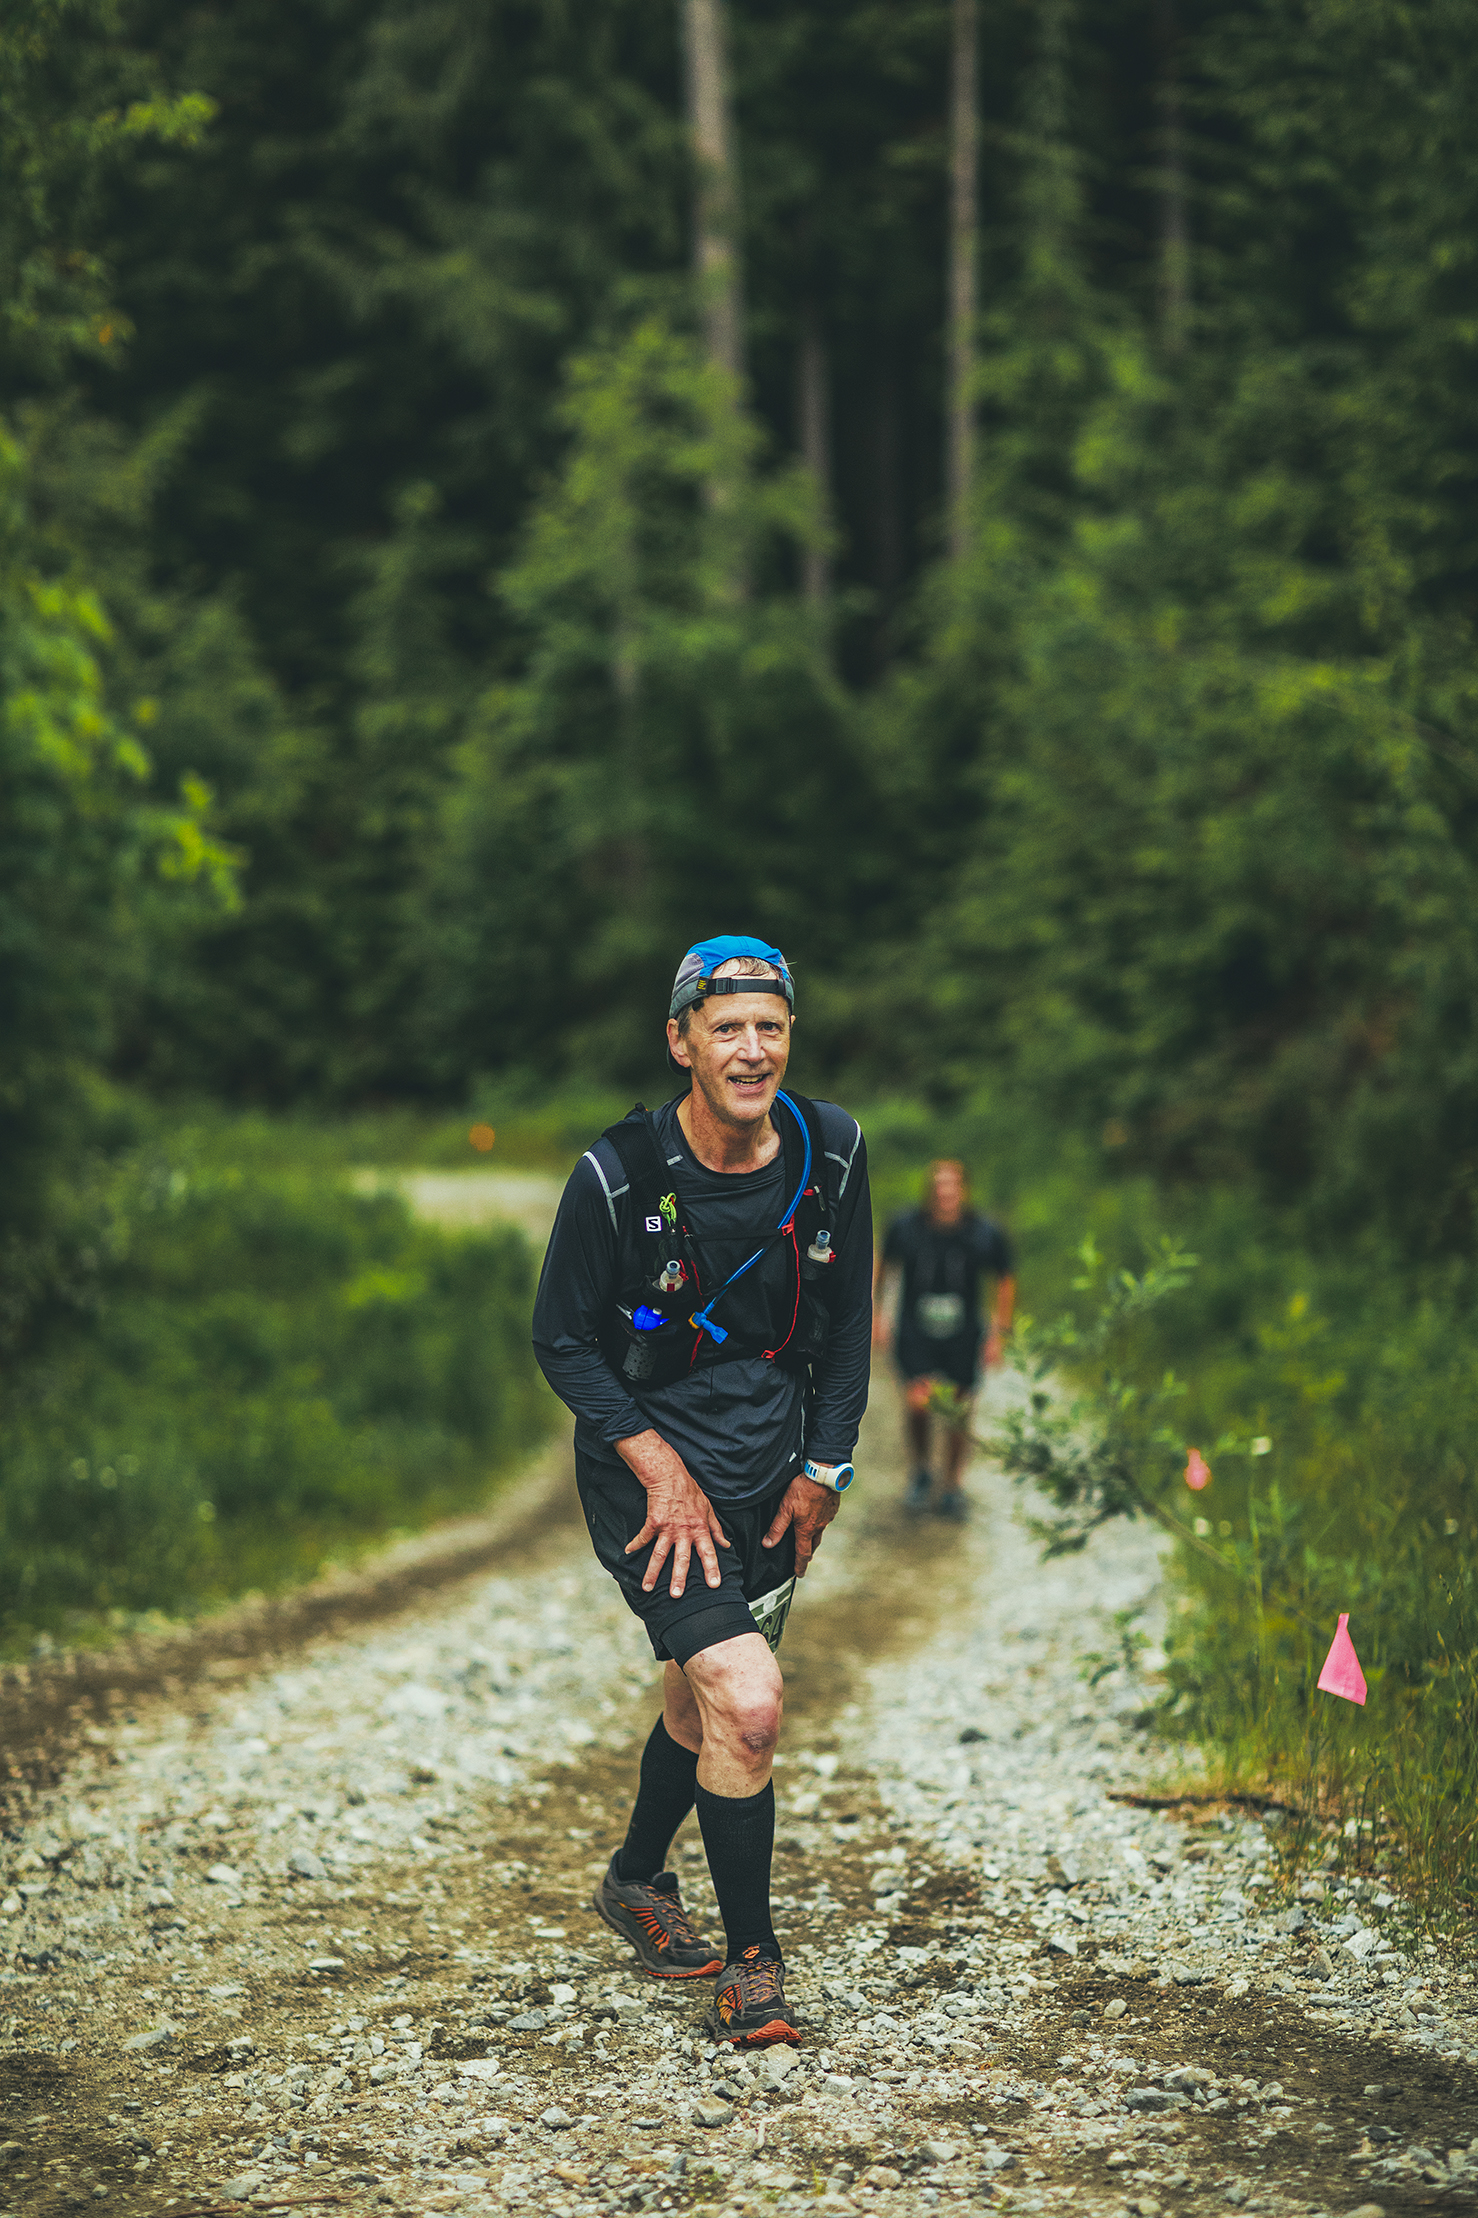 Fraser Valley Trail Races - Bear Mountain - IMG_1967 by Brice Ferre Studio - Vancouver Portrait Adventure and Athlete Photographer.jpg